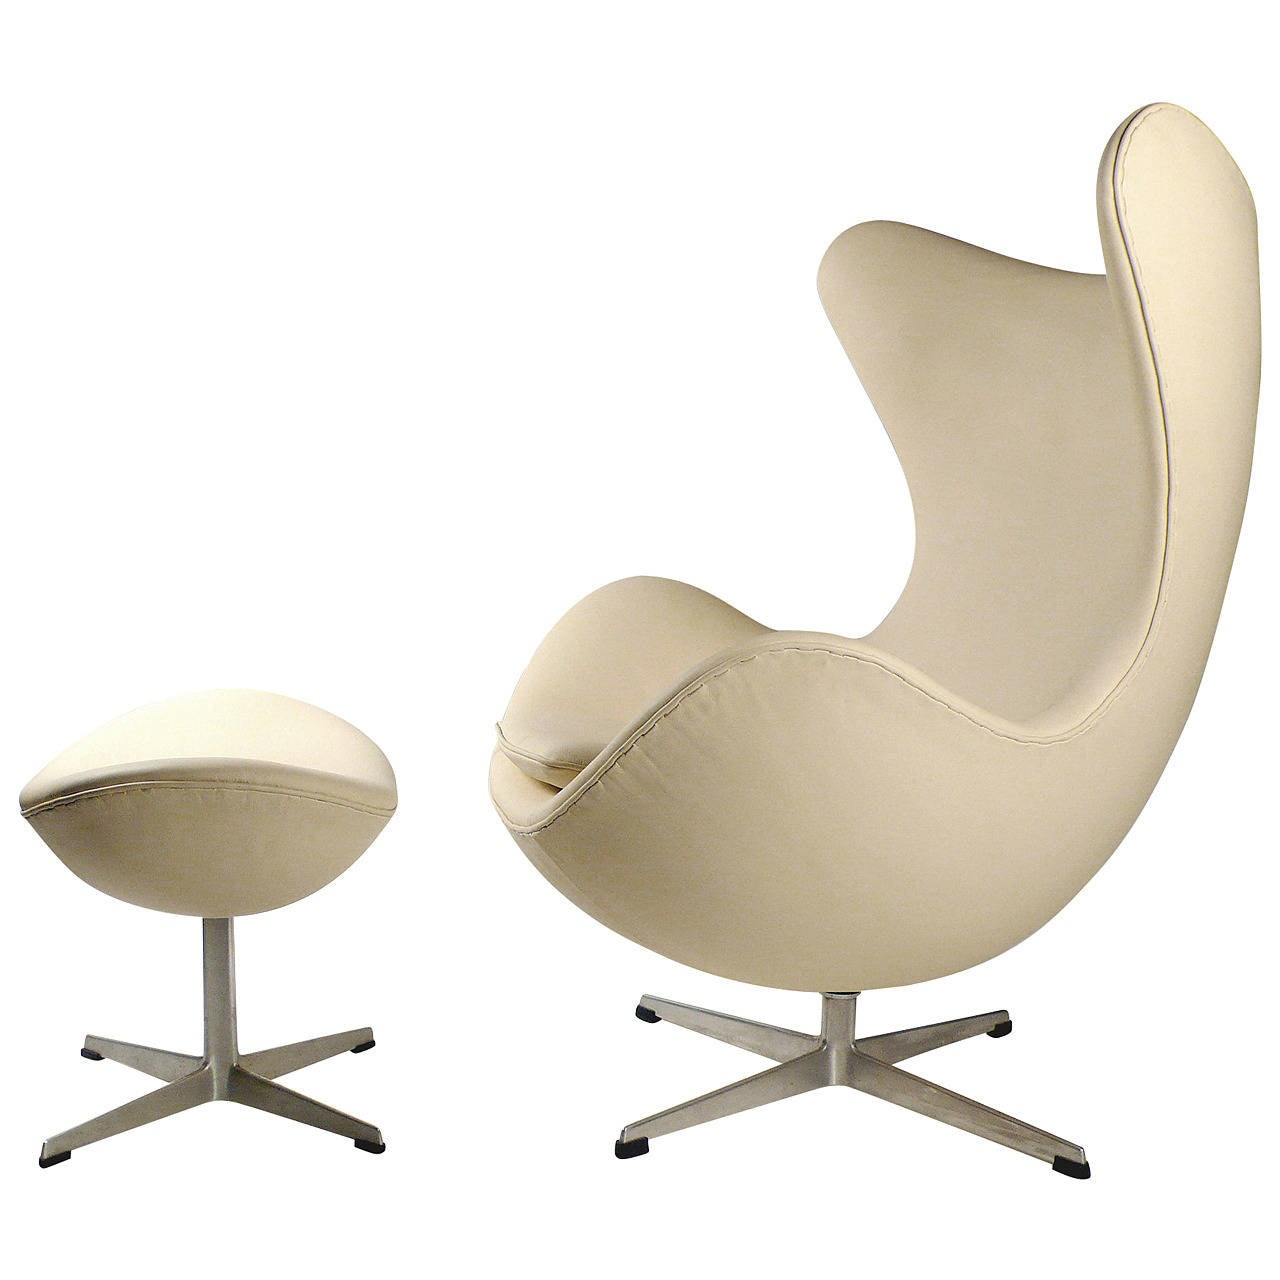 jacobsen egg chair leather lamps plus chairs early production with ottoman by arne